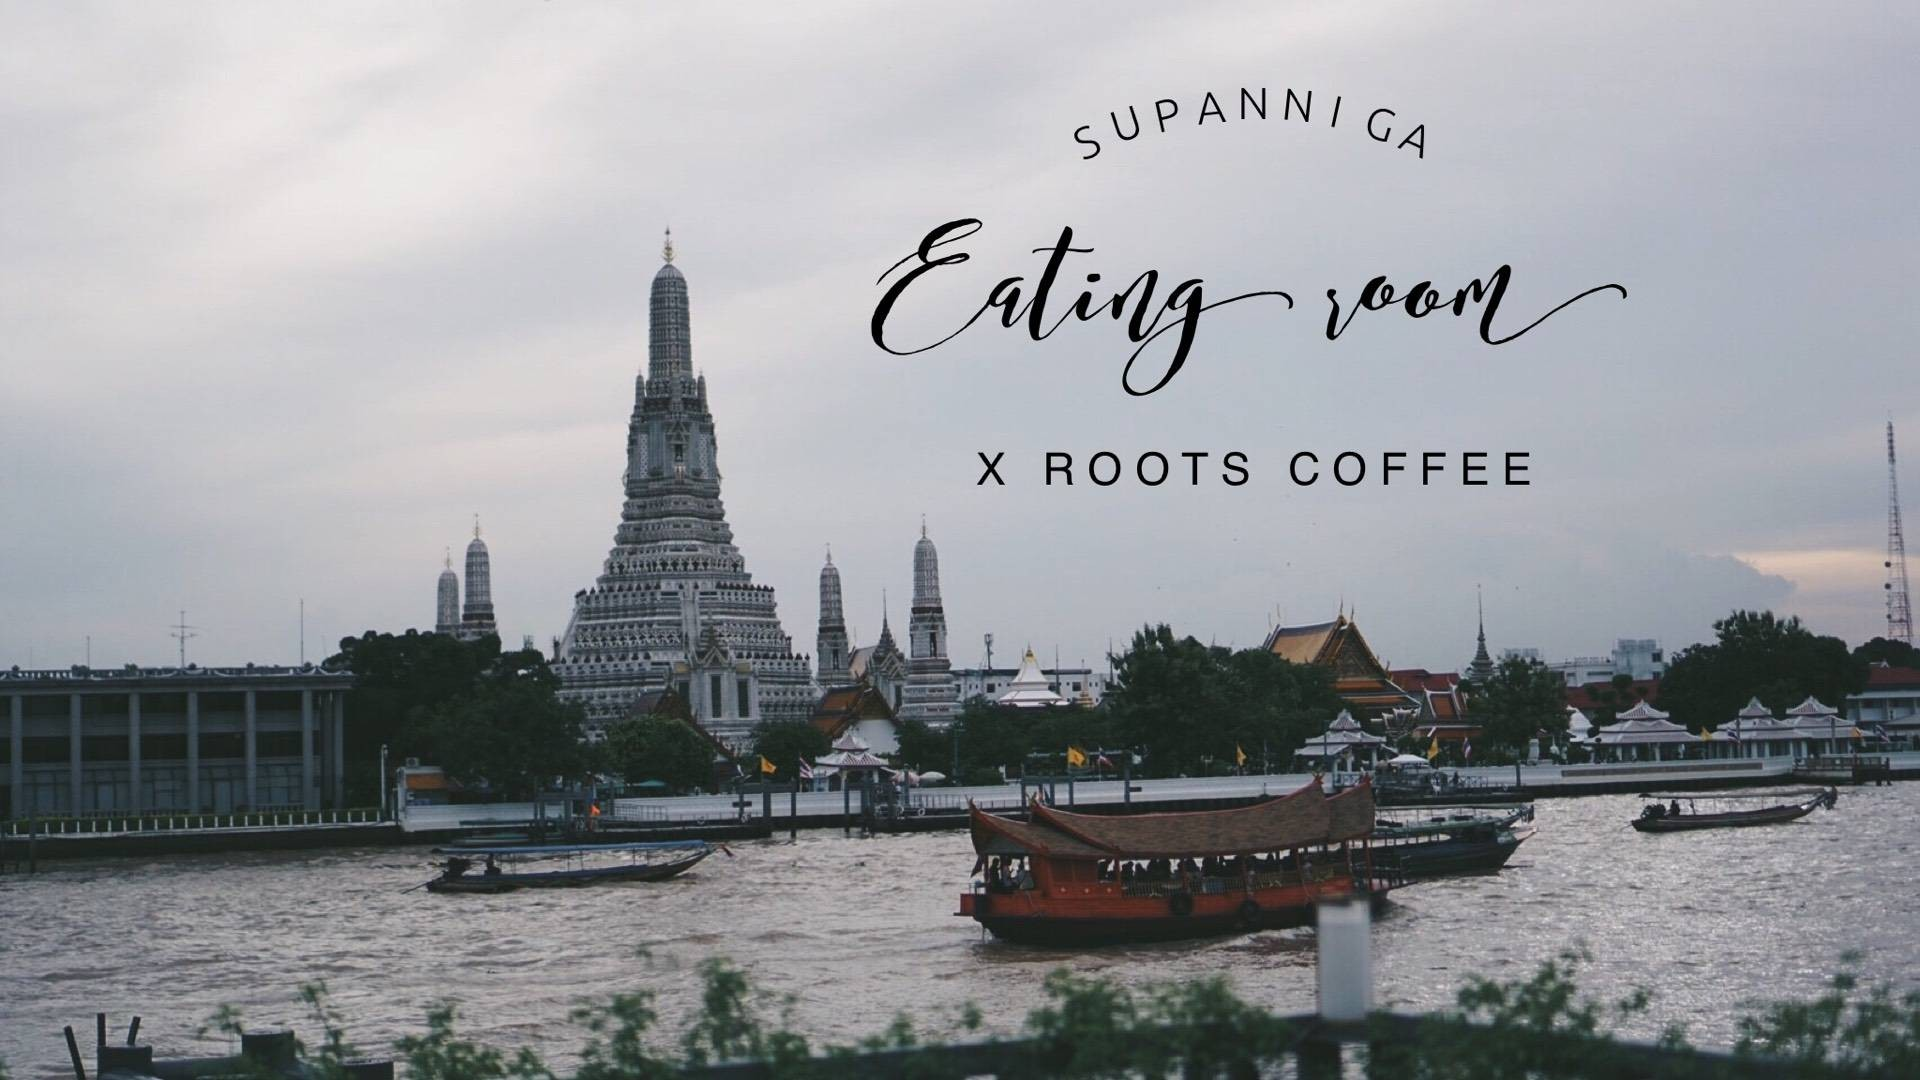 Supanniga Eating Room X Roots Coffee สุพรรณิการ์